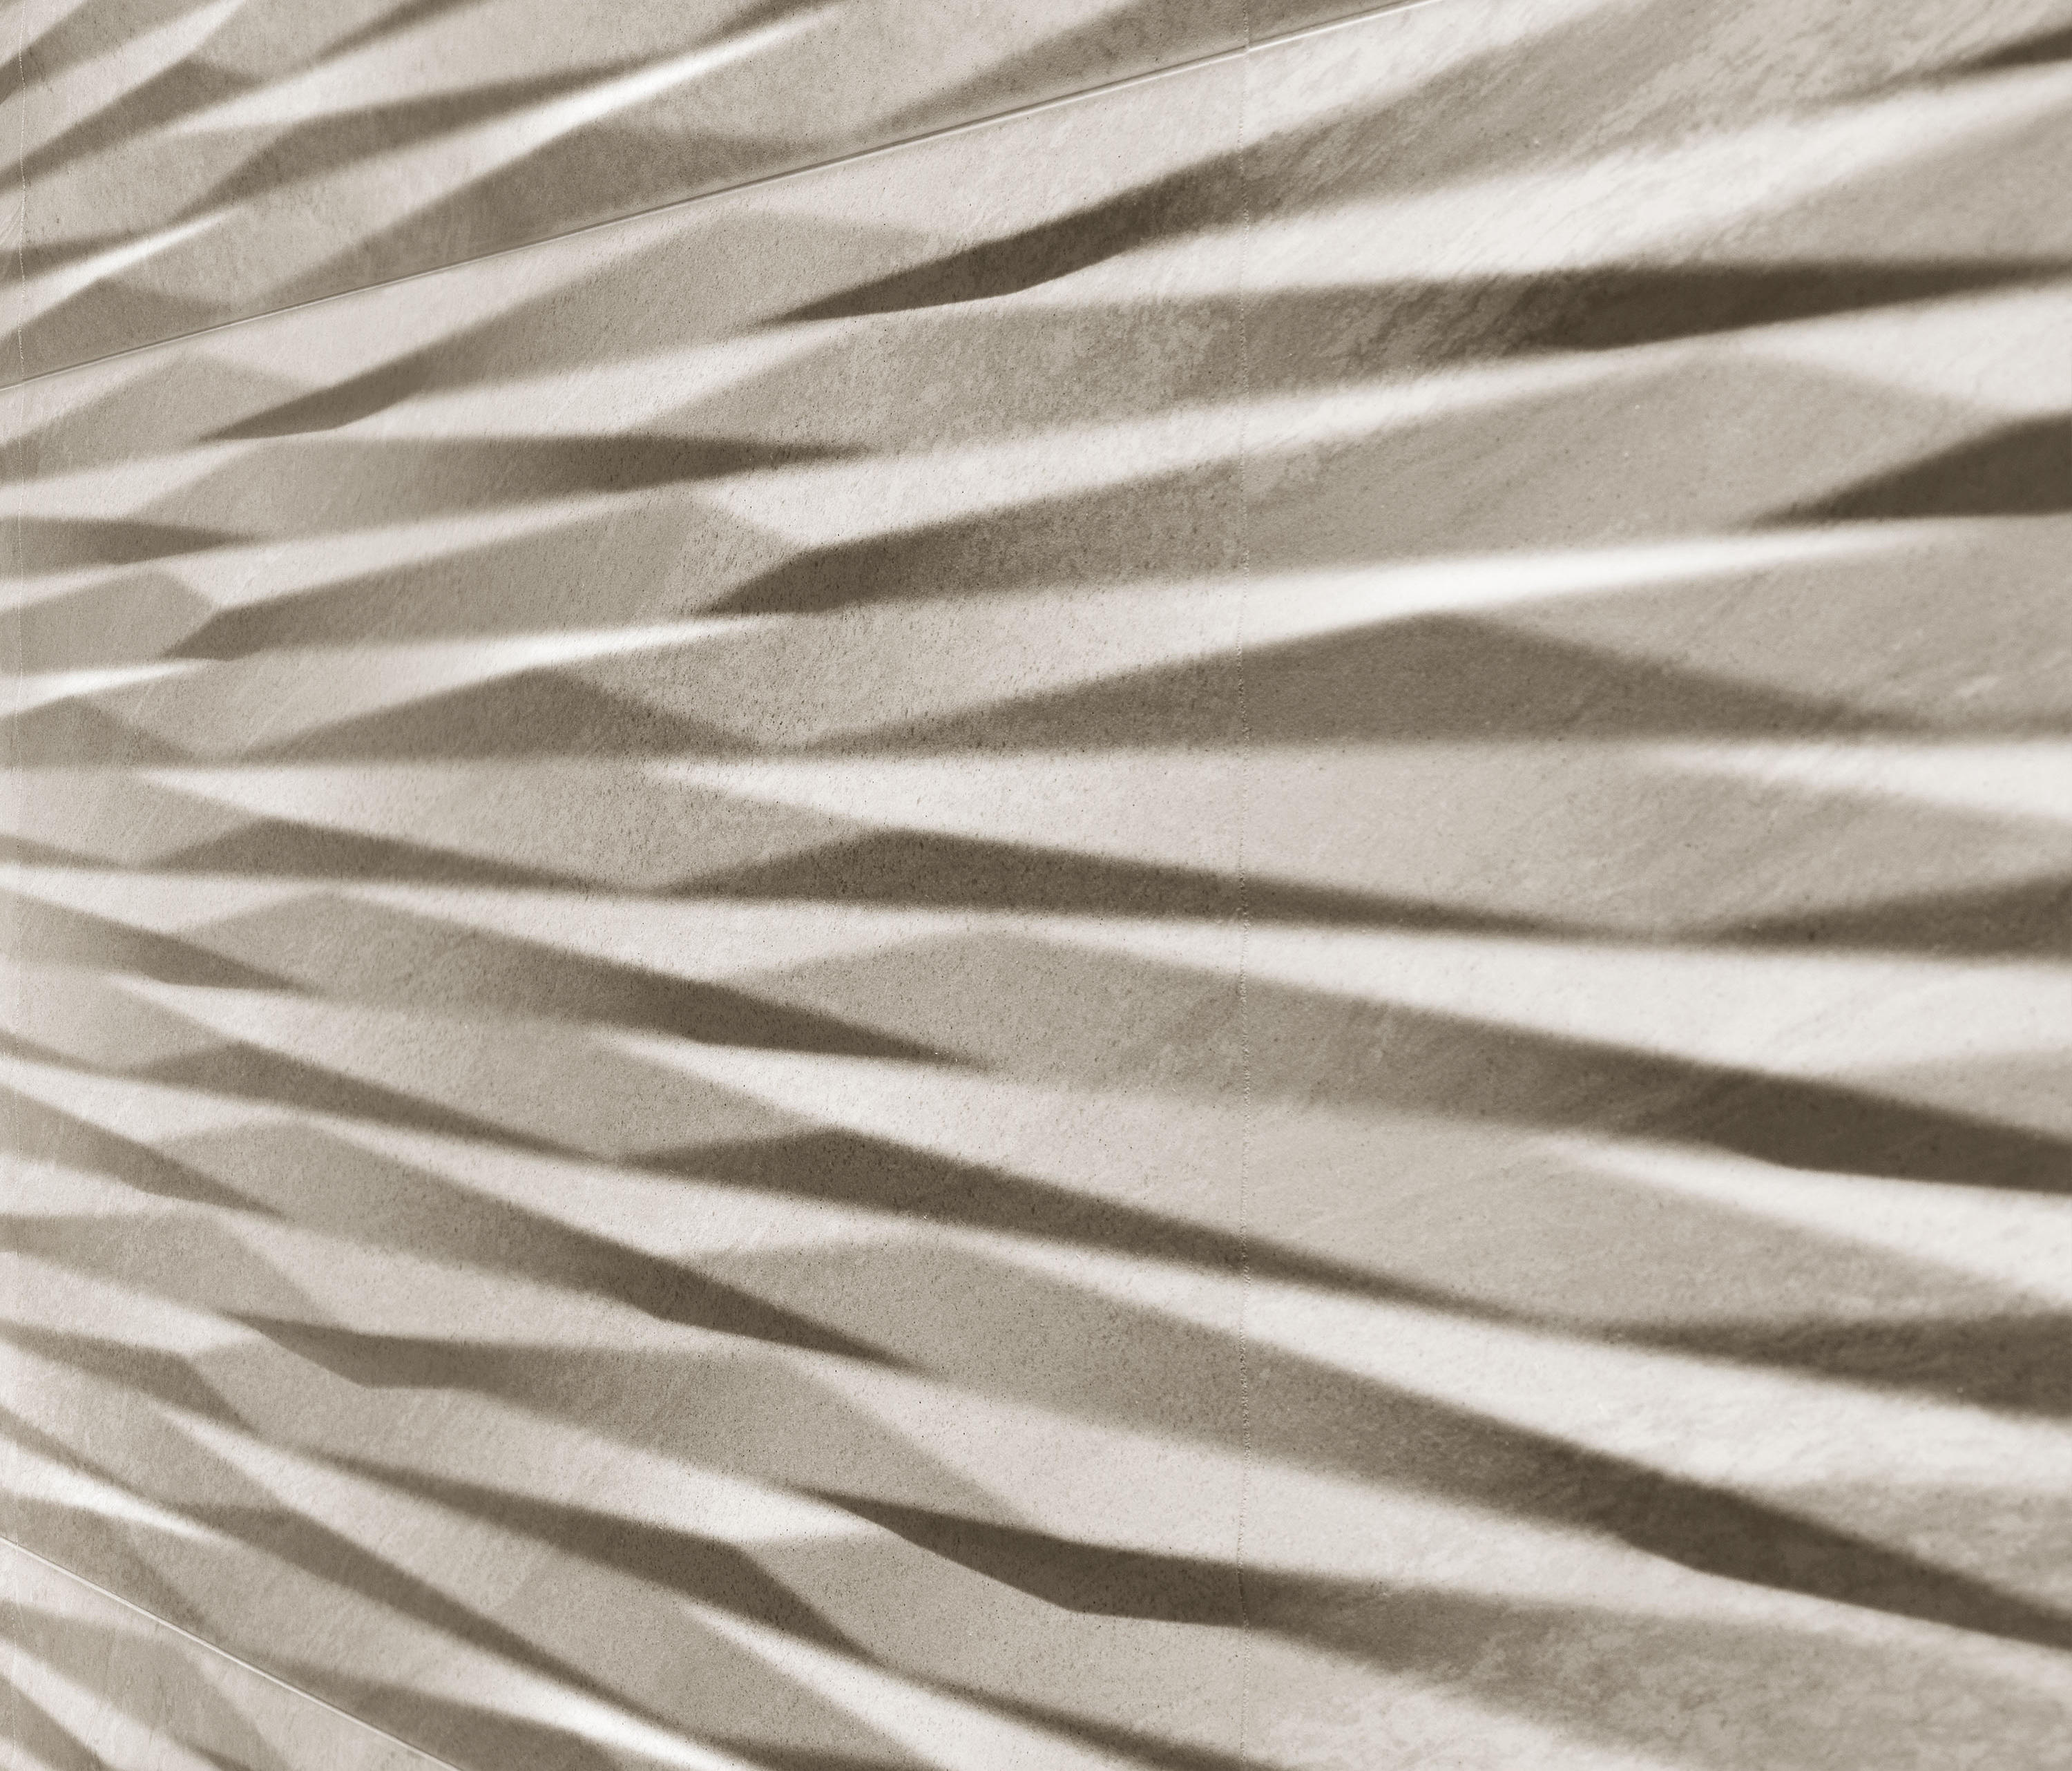 Brave 3d wall blade ceramic tiles from atlas concorde for Carrelage 3d